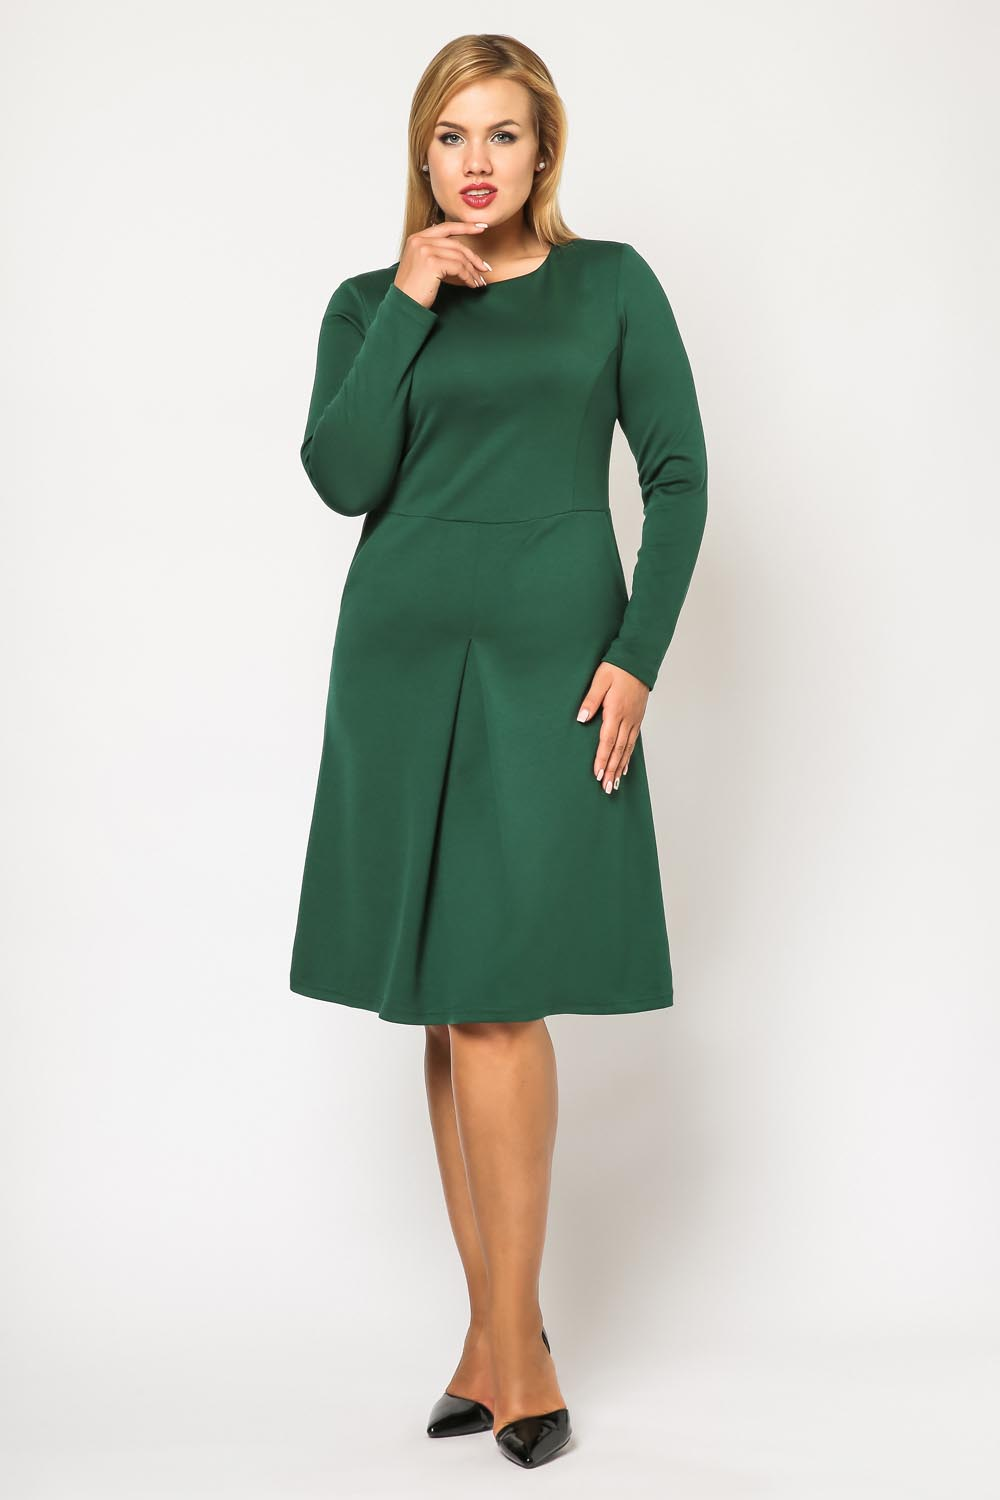 Green seam midi length plus size dress with long sleeves